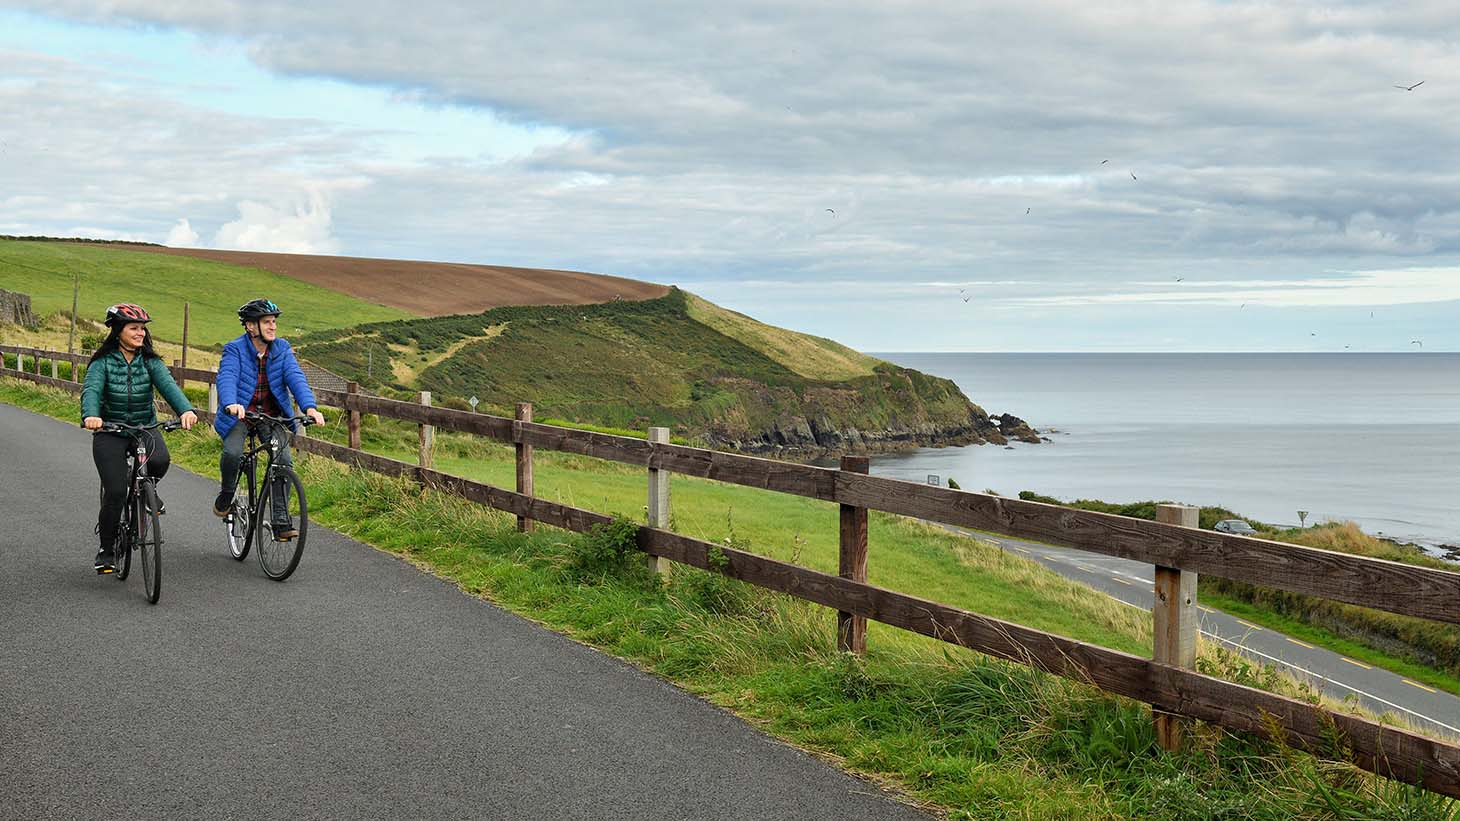 Surround yourself with stunning views along the Waterford Greenway